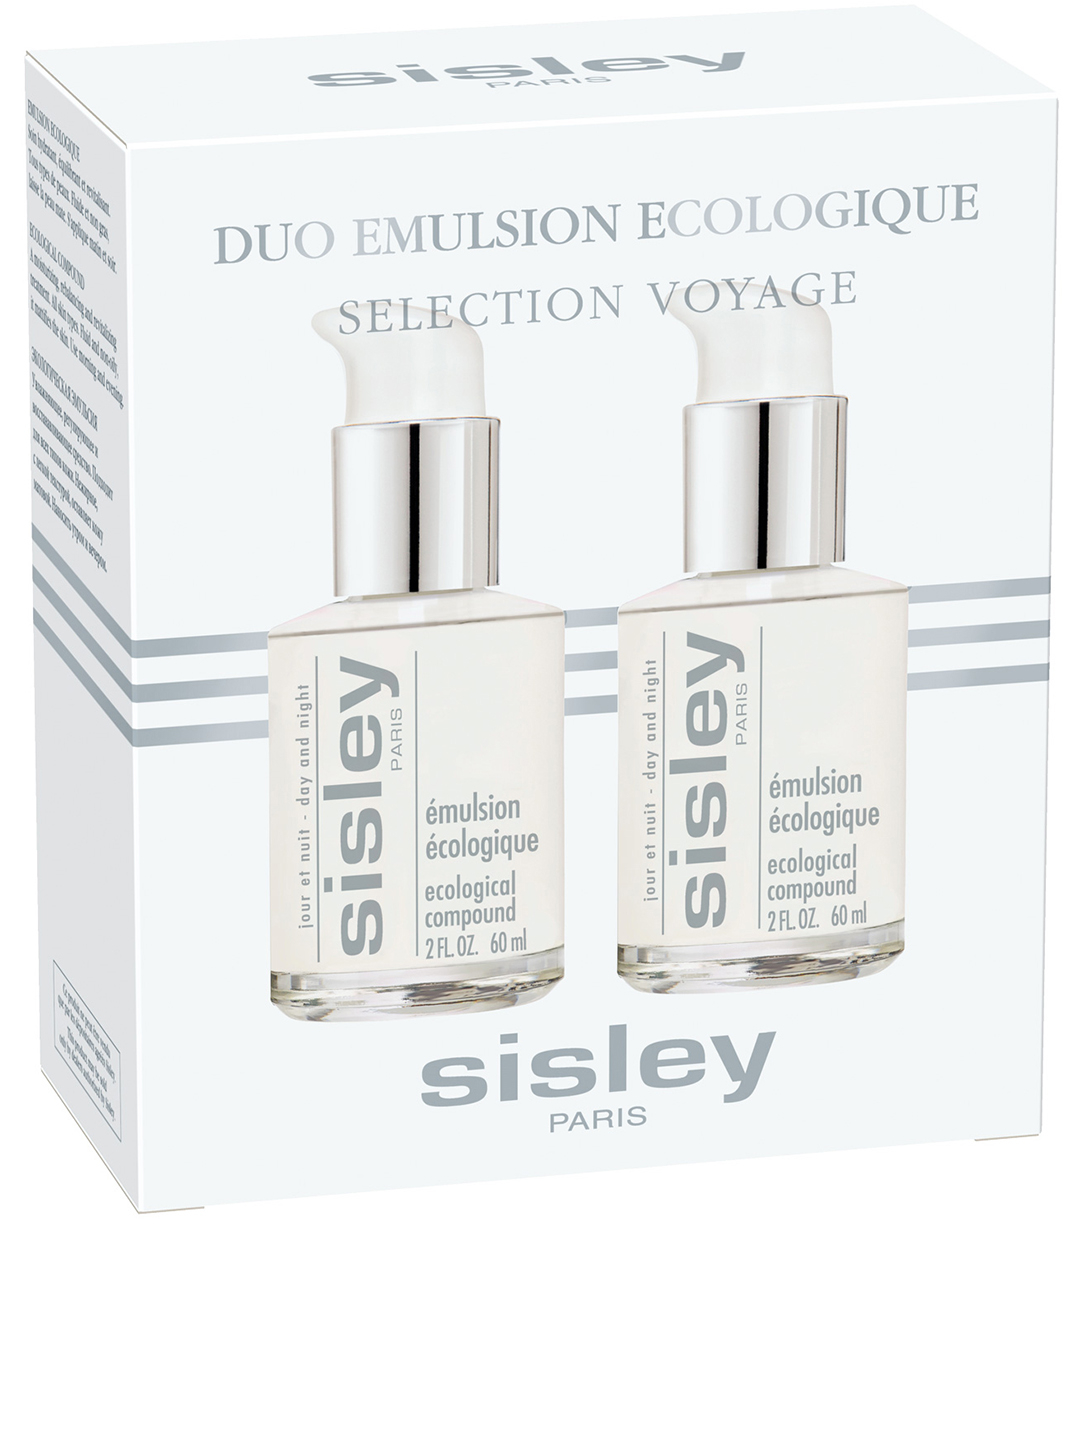 SISLEY-PARIS Ecological Compound Emulsion Duo Beauty